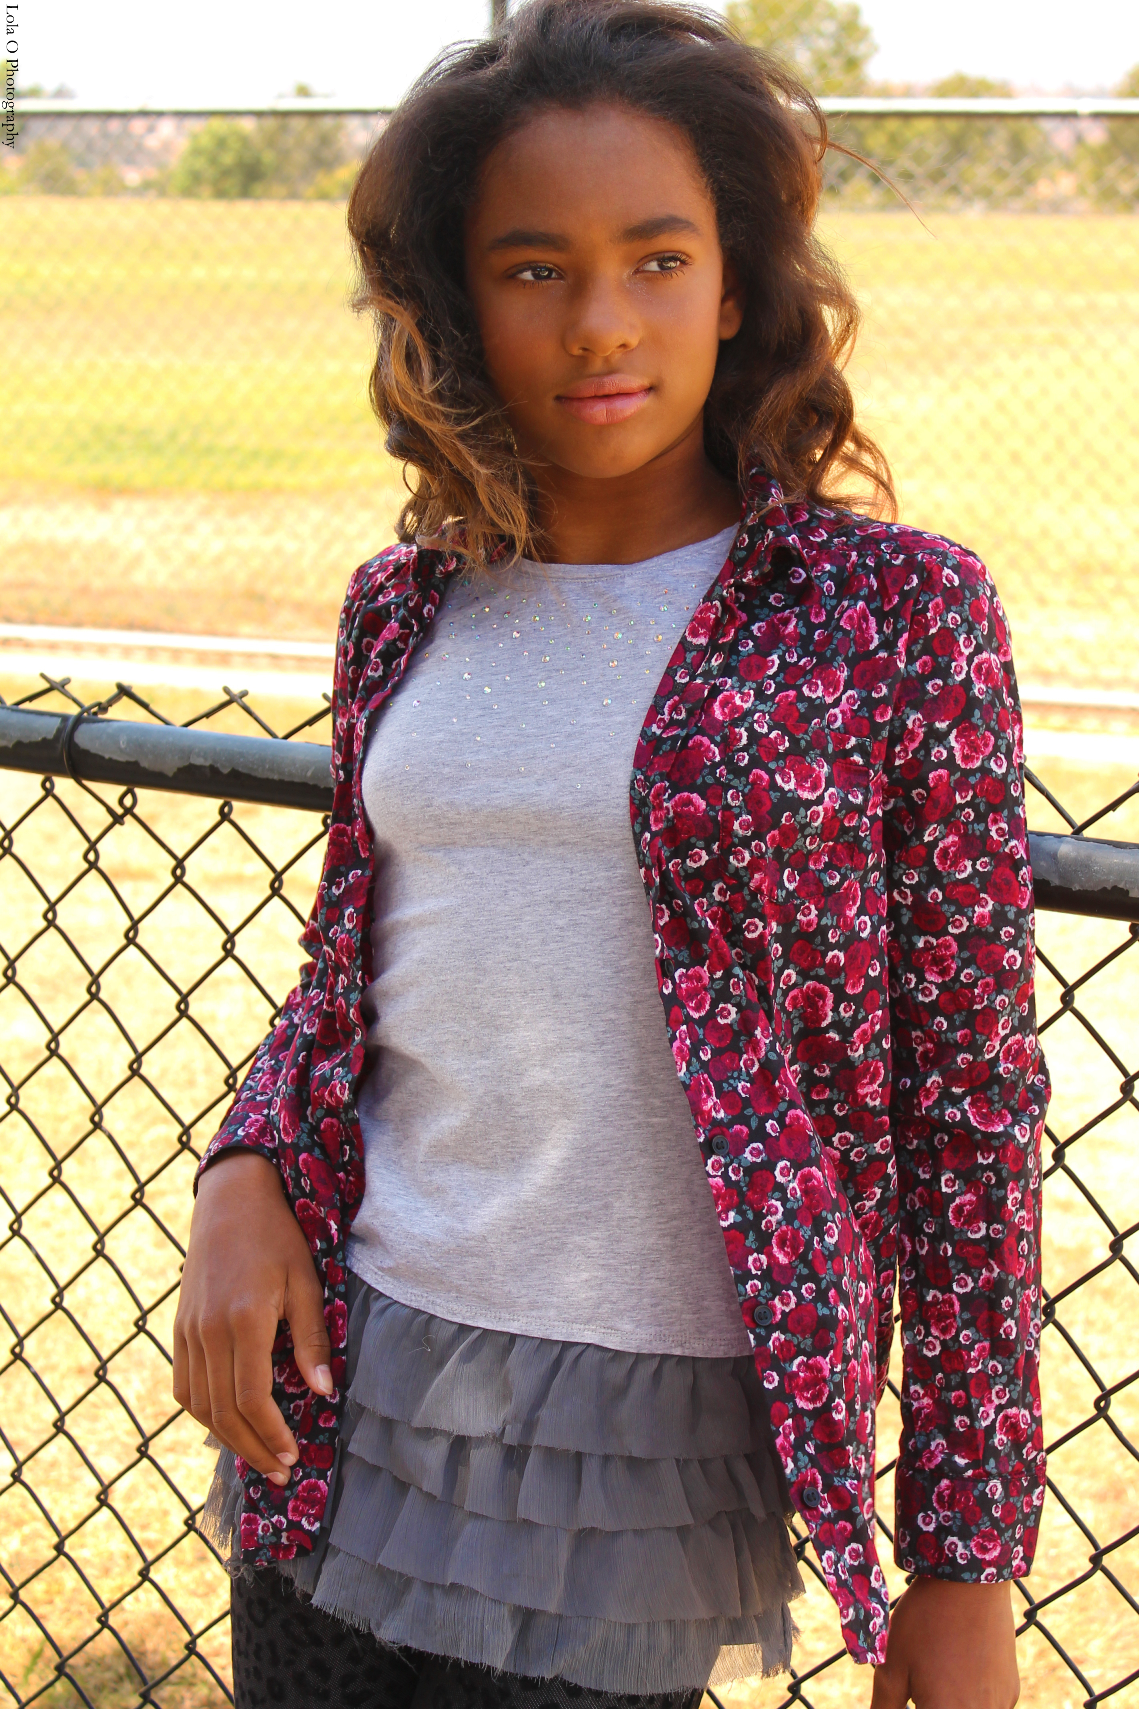 Teen Fashion | Lola O Photography